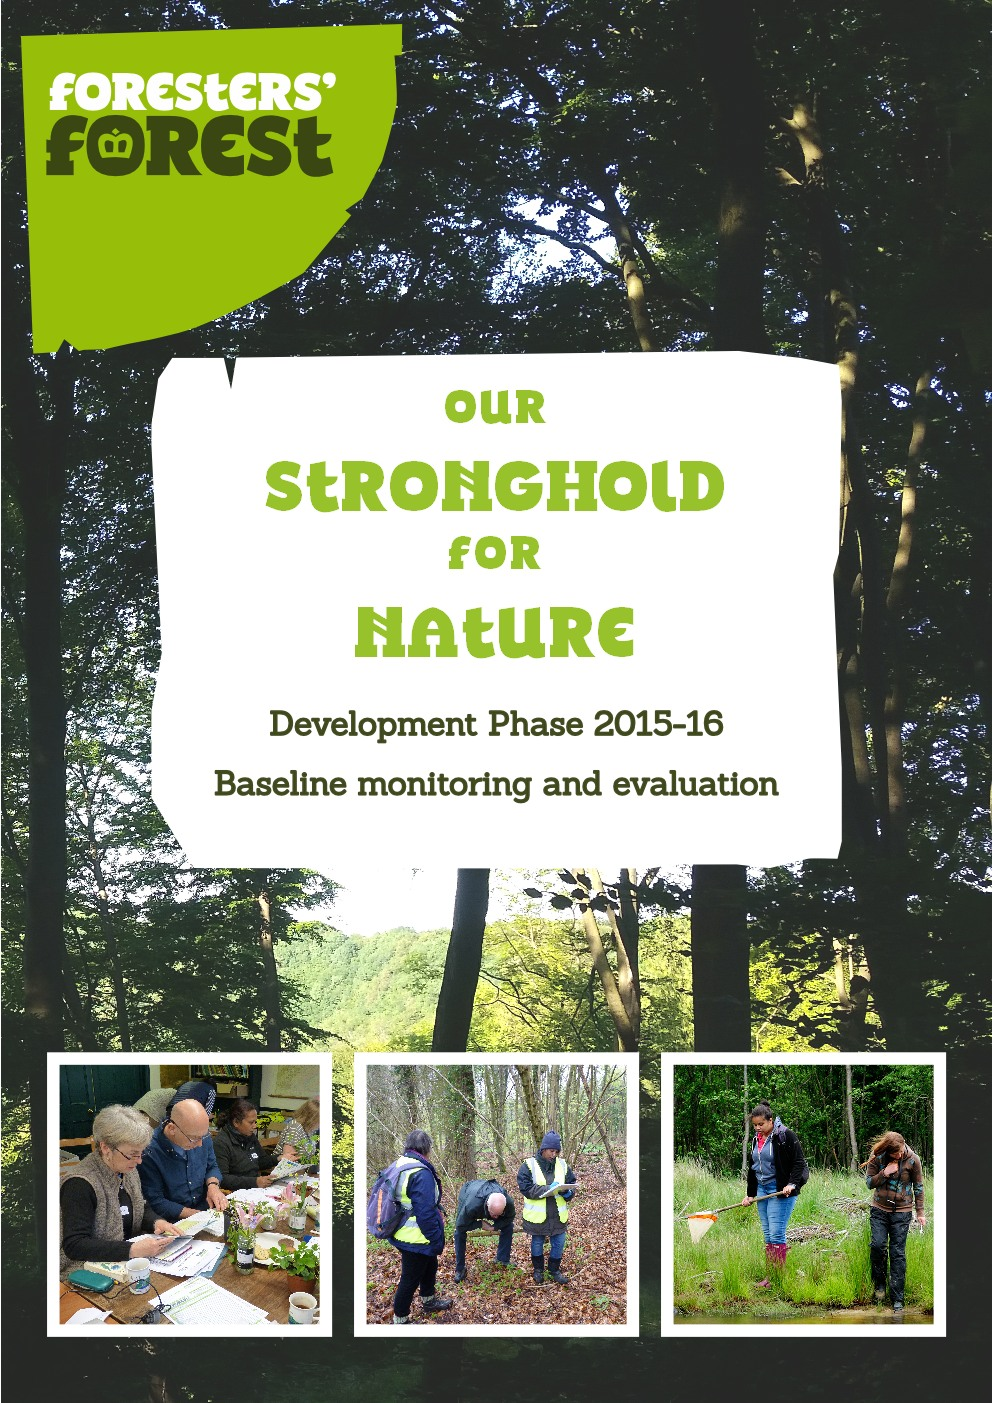 a picture of the front cover of GCER's Biodiversity Baseline Report for the Foresters' Forest HLF project